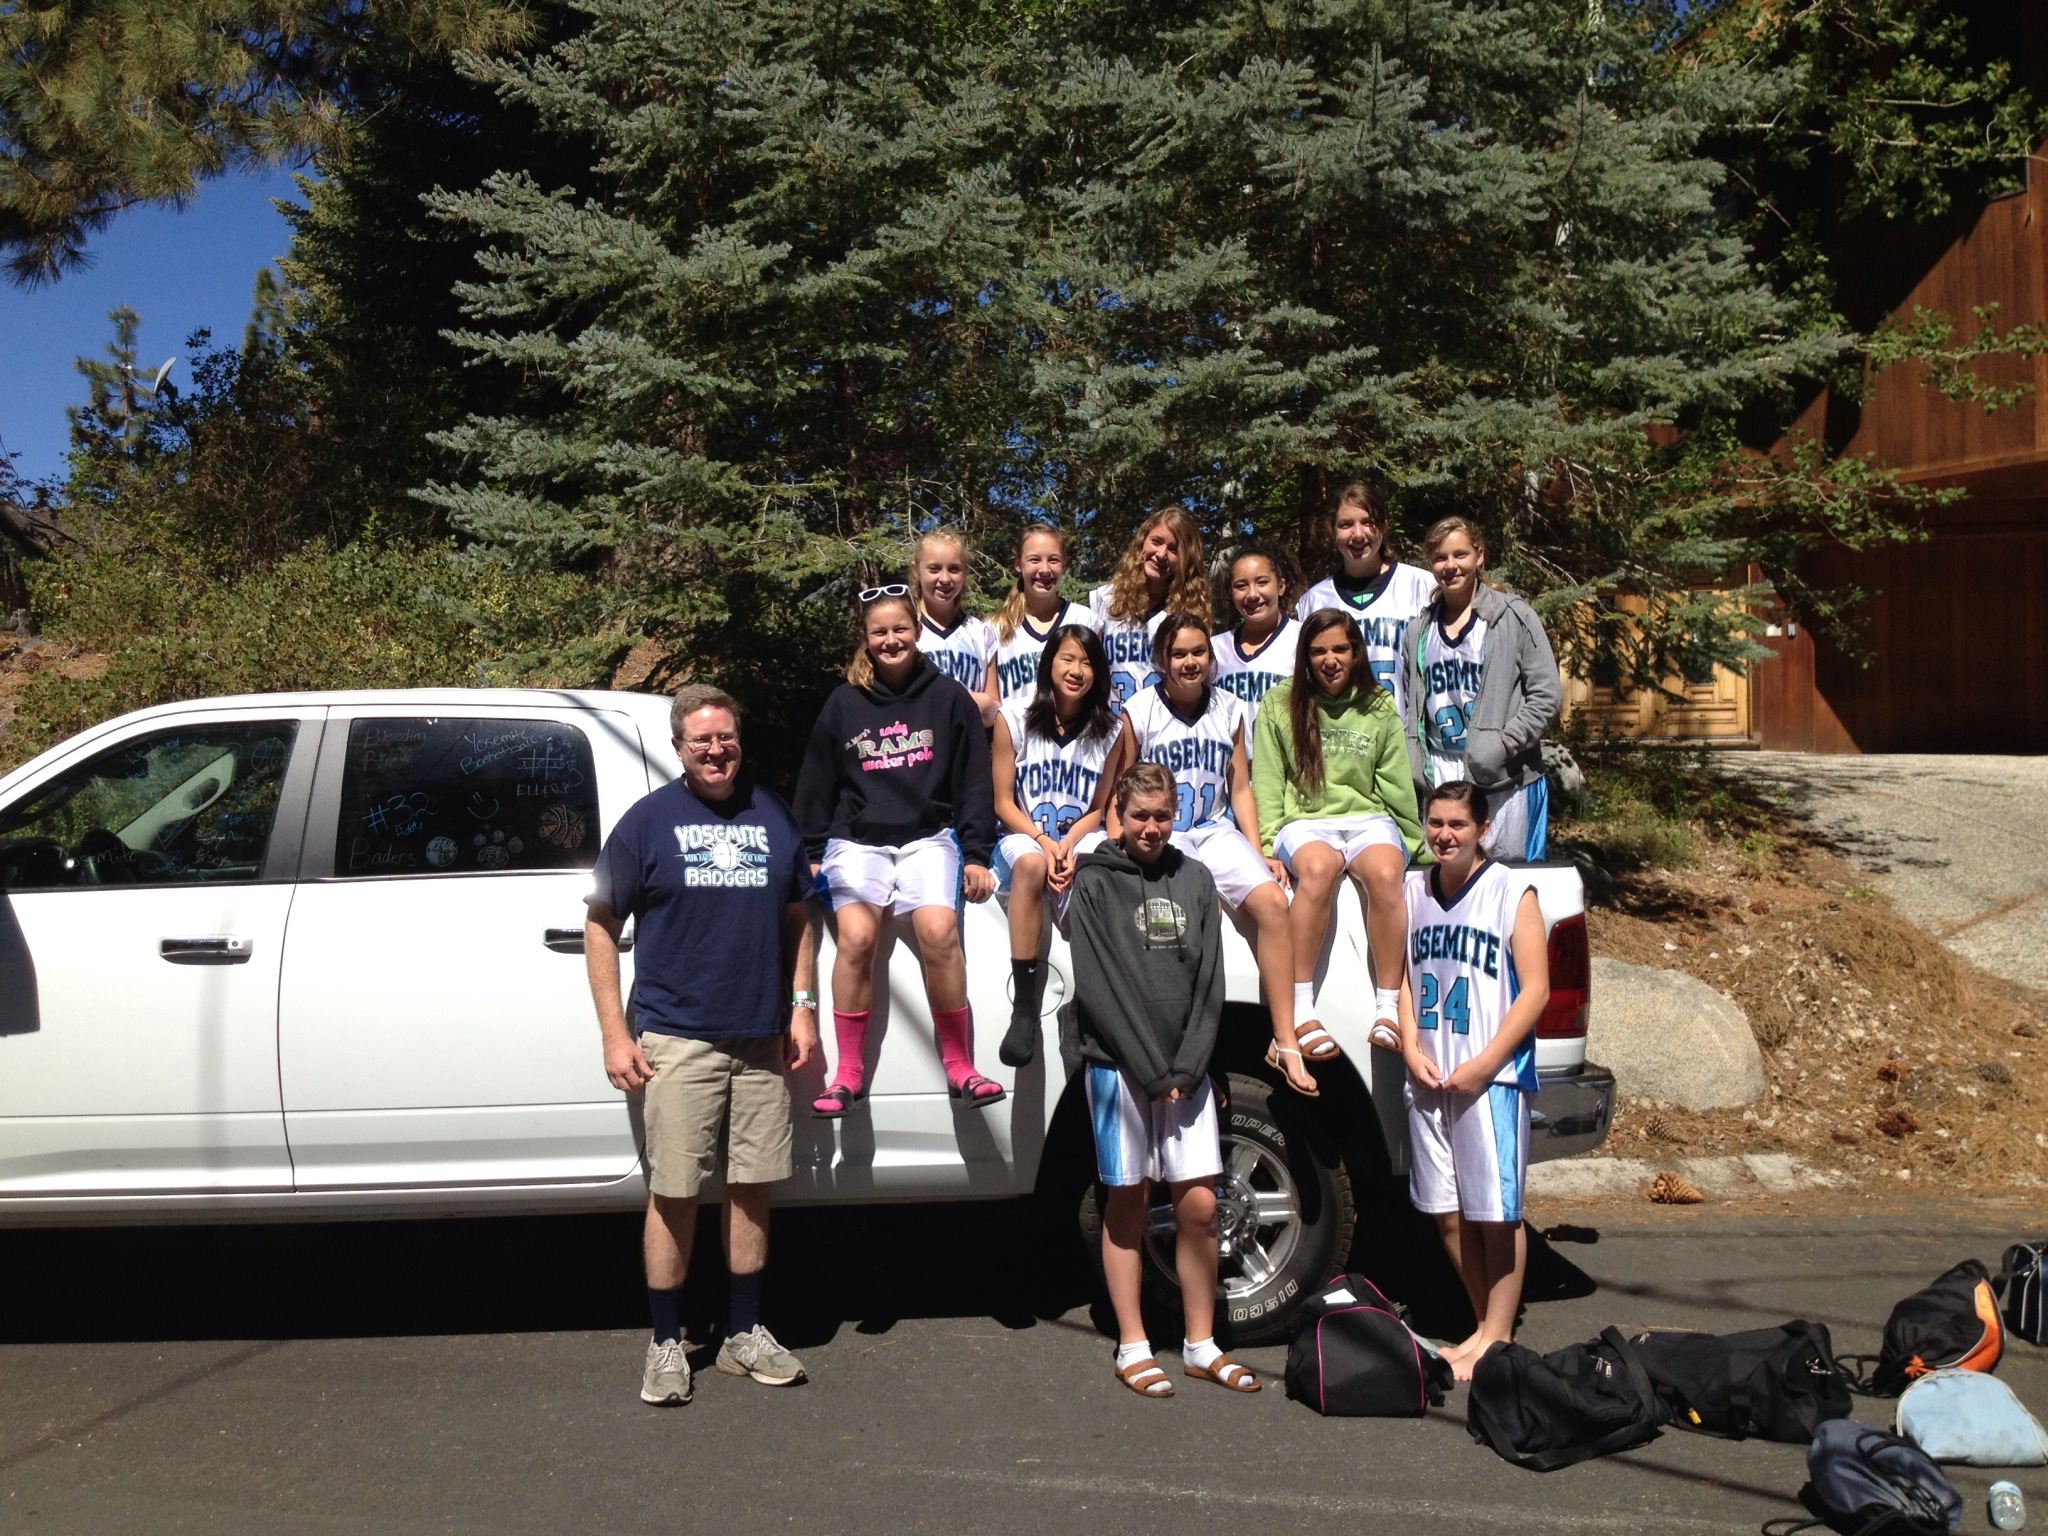 Yosemite Badgers Girls Basketball in Tahoe - photo by Stacey Montalto 2014